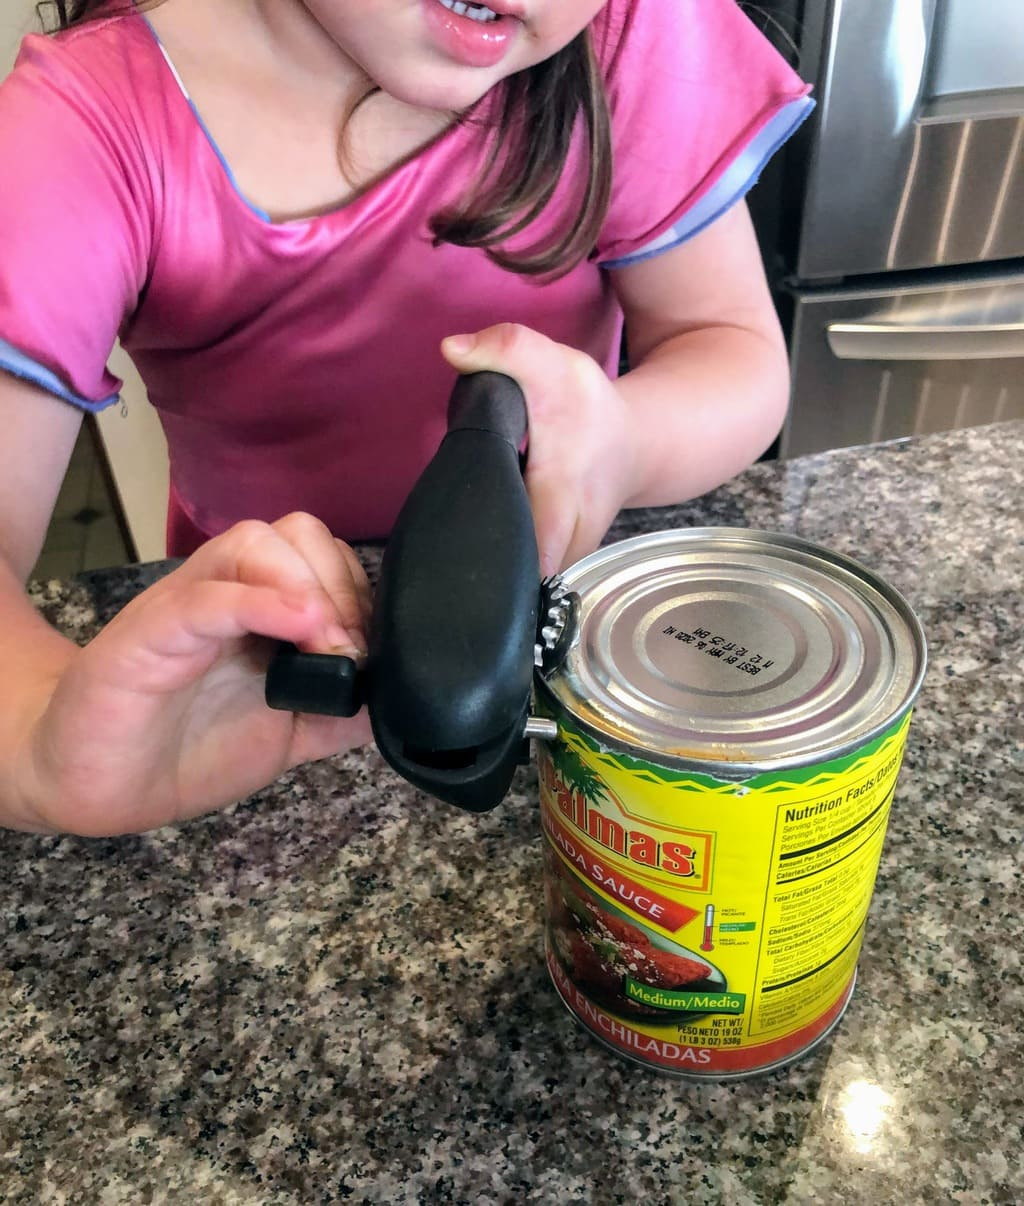 child opening can of enchilada sauce with can opener